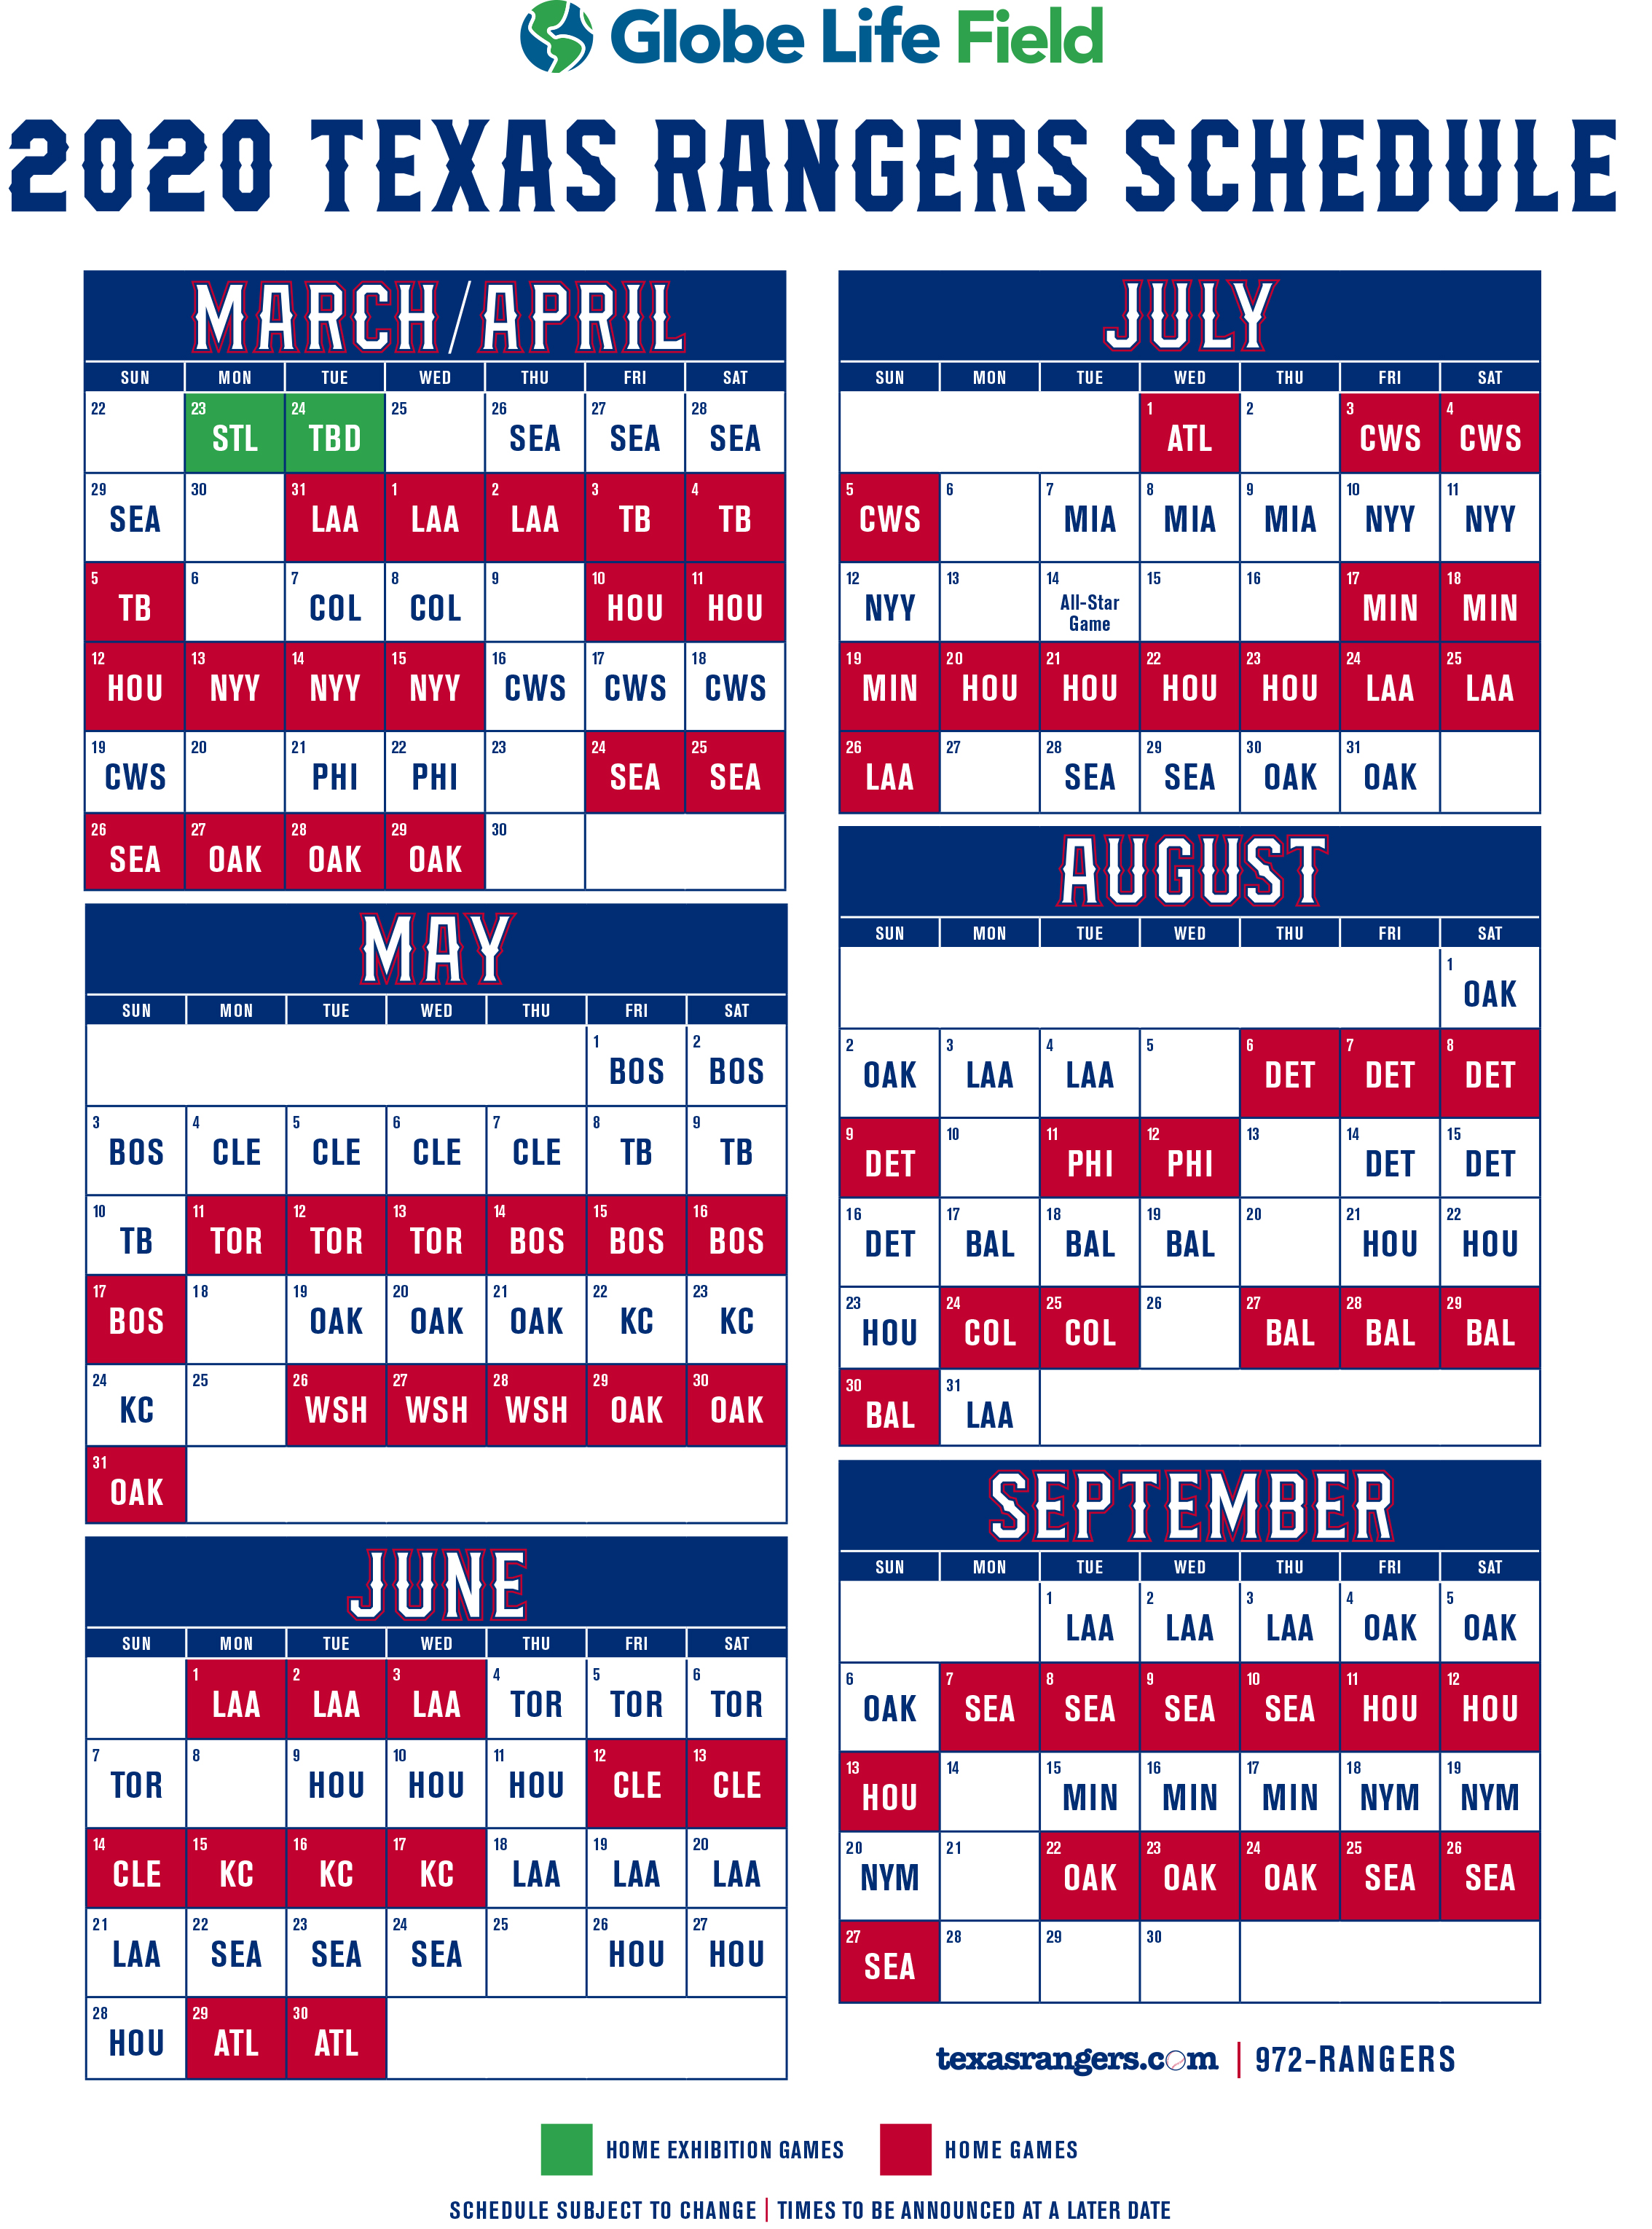 Mlb 2020 Schedule.Texas Rangers 2020 Schedule Released New Stadium To Be